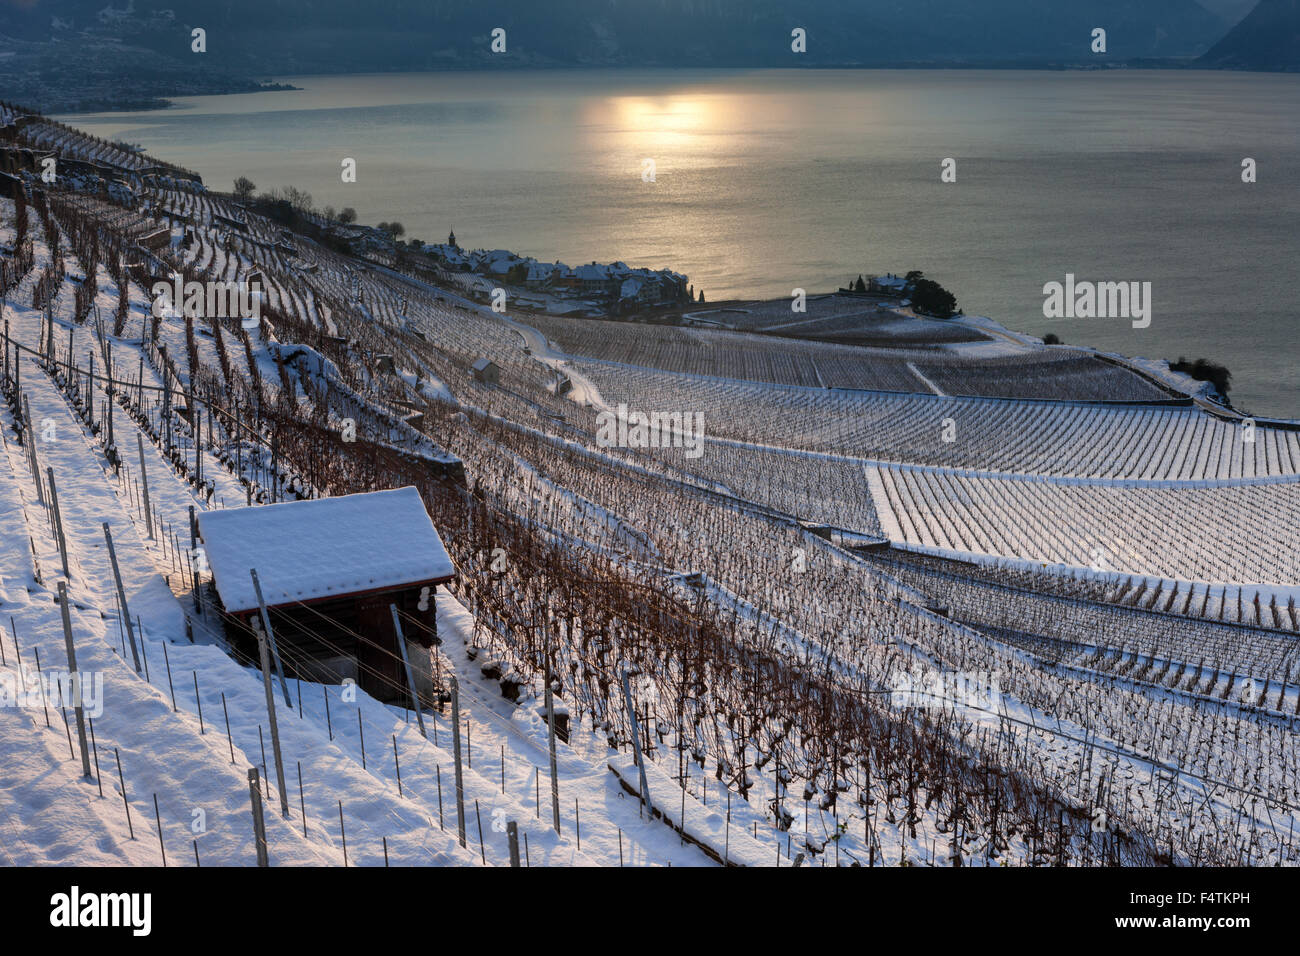 Rivaz, Switzerland, canton, Vaud, lake Geneva, Leman, vineyards, wine-growing, sunrise - Stock Image